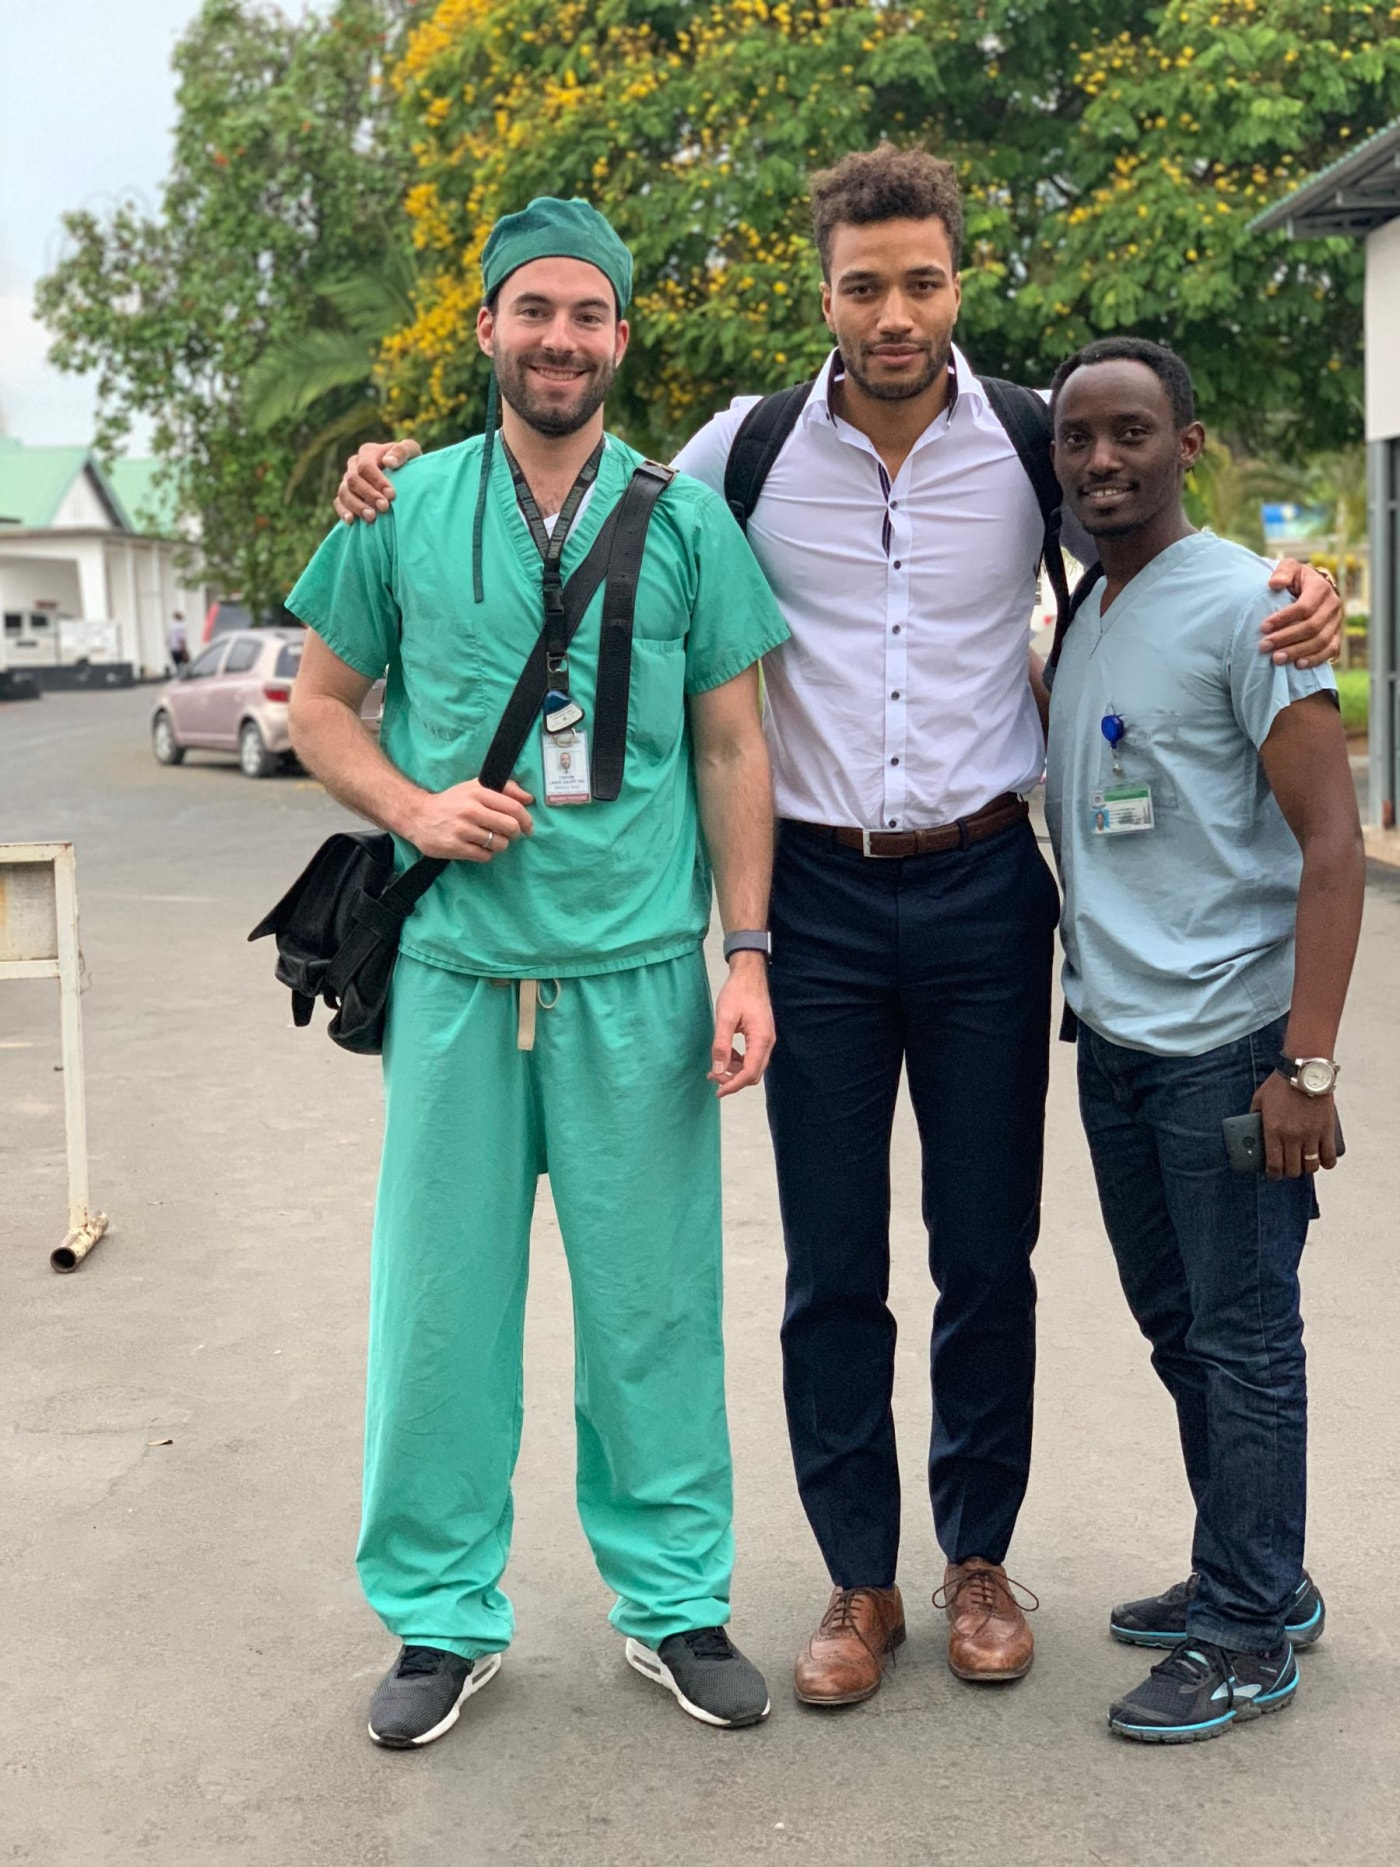 Visiting IR resident Dr. Fabian Laage Gaupp from Yale (left), with visiting medical student Jonathan Apasu from Bonn (middle), and Ivan Rukundo (right), MUHAS IR resident.